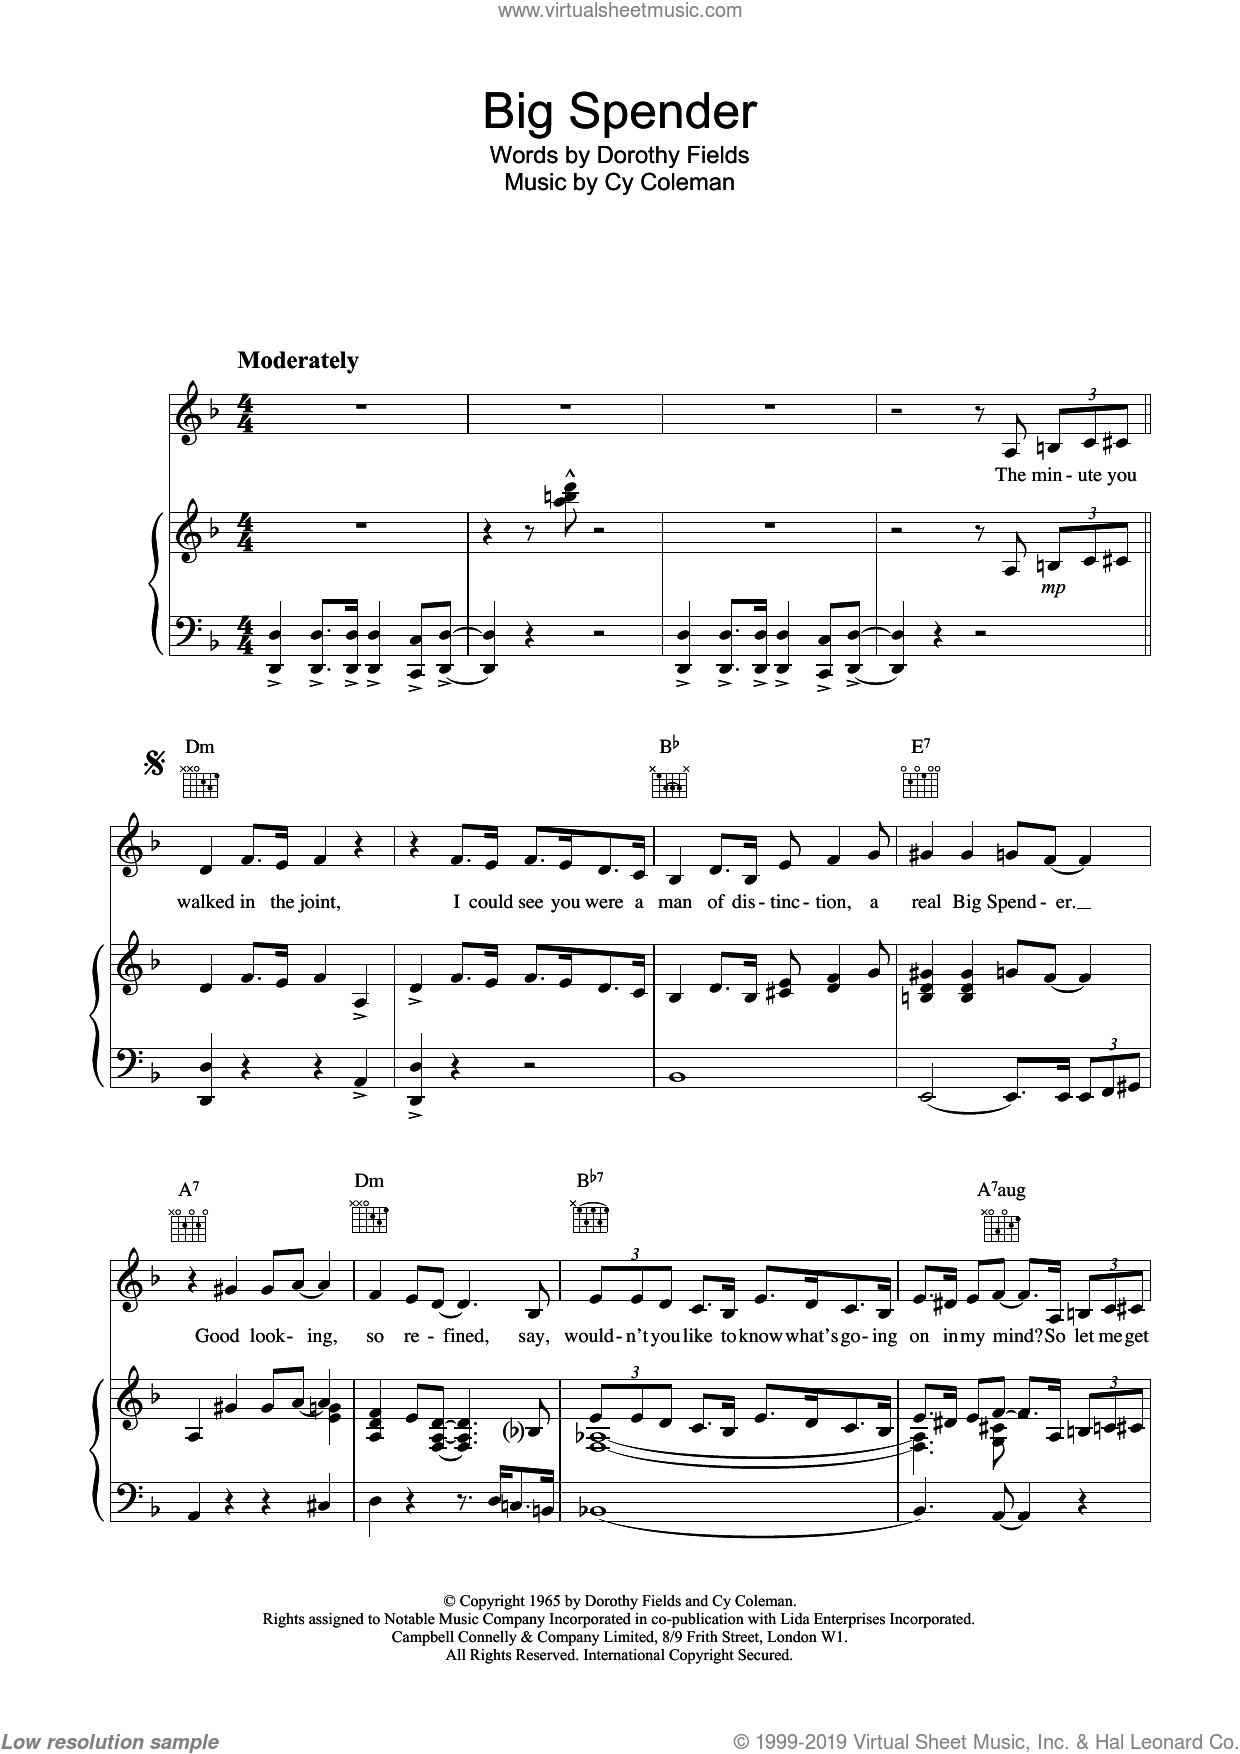 Big Spender sheet music for voice, piano or guitar by Dorothy Fields